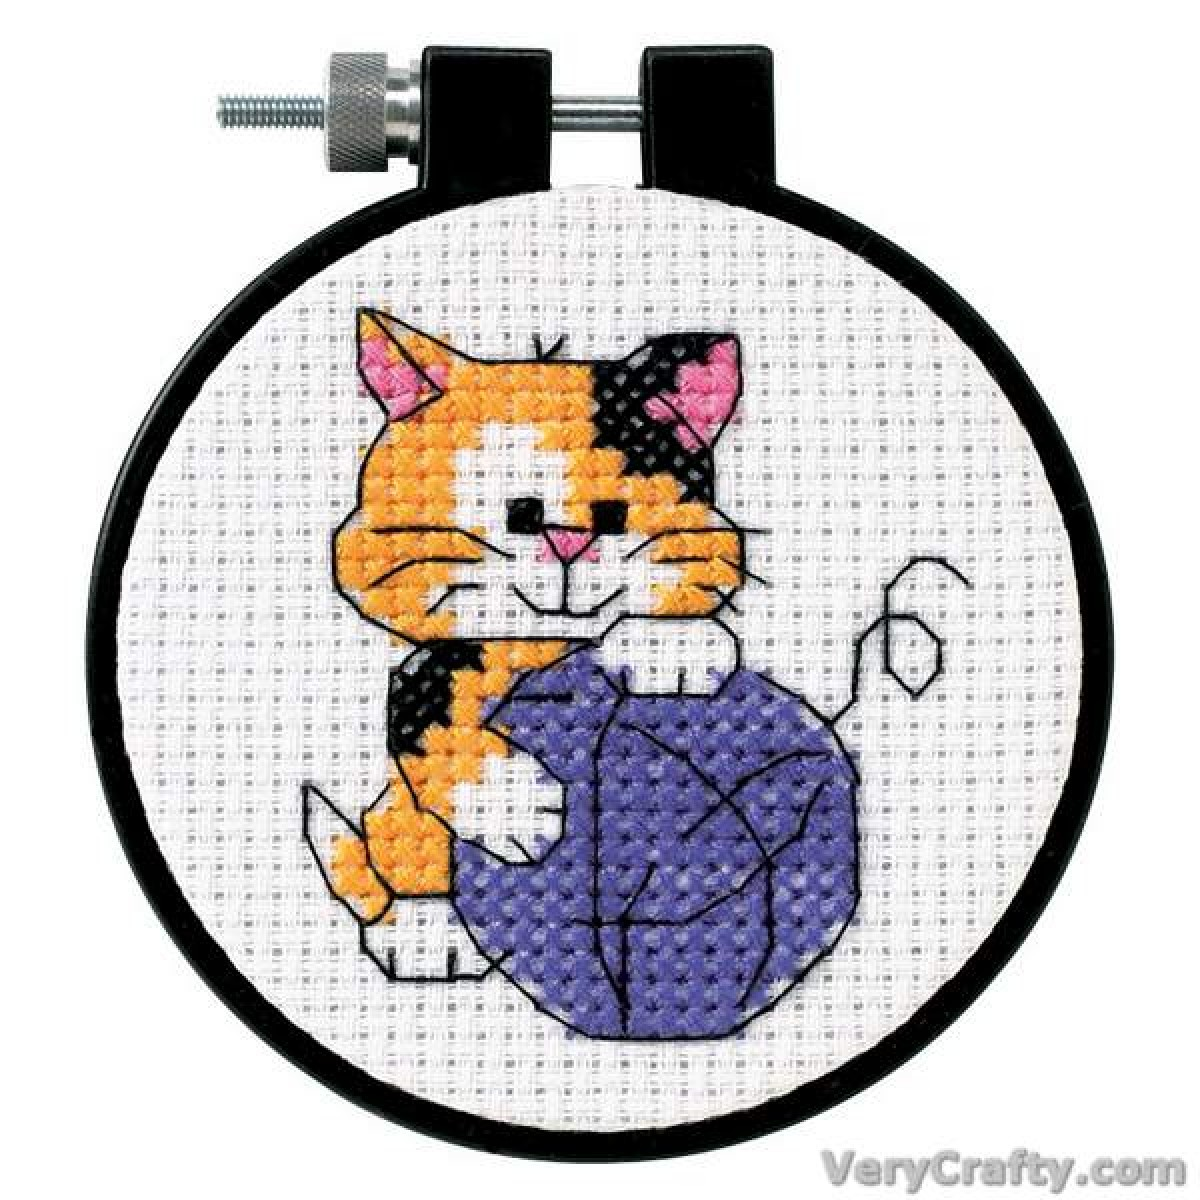 D73038 Cute Kitty Learn-A-Craft Counted Cross Stitch Kit Dimensions